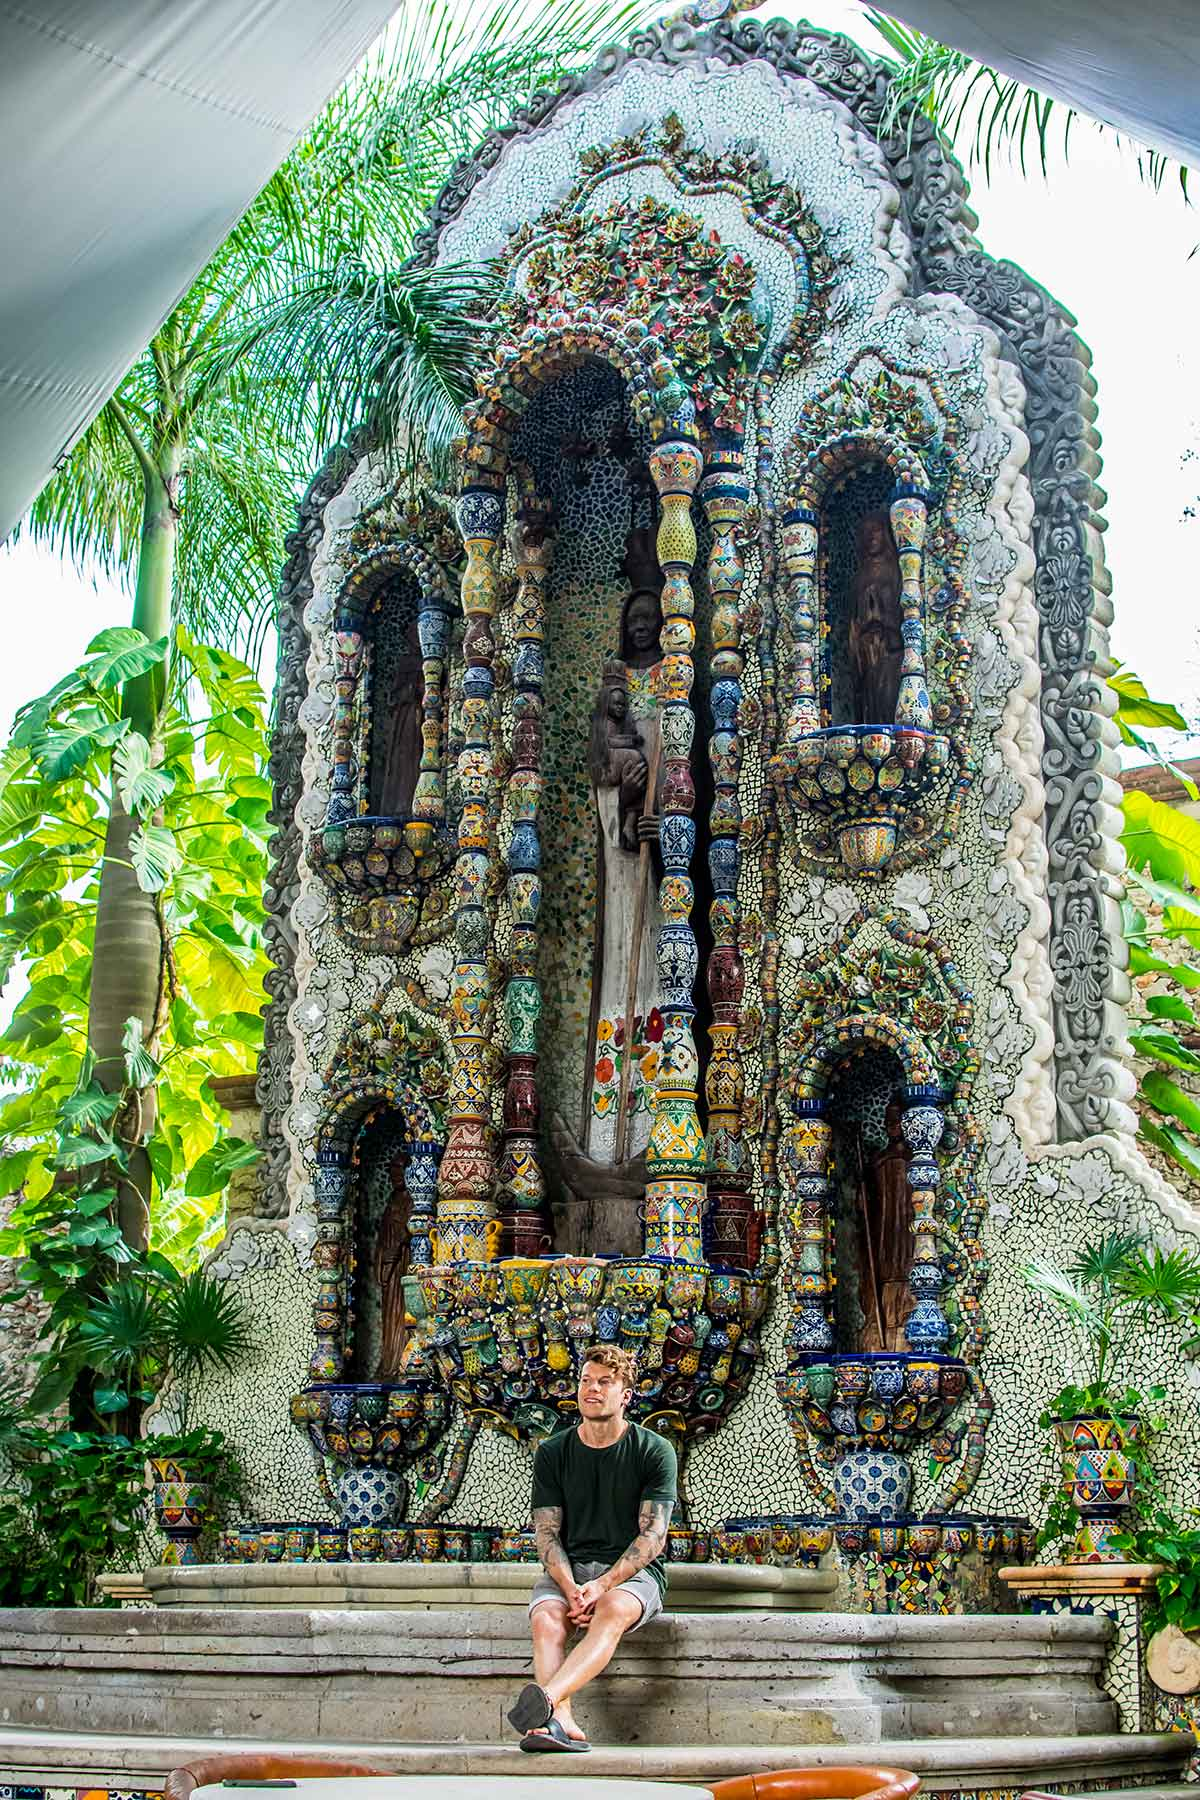 20 EPIC Valladolid Instagram spots for travelling Mexico. A man sits in front of La Casona fountain in Valladolid built from thousands of individual tiles